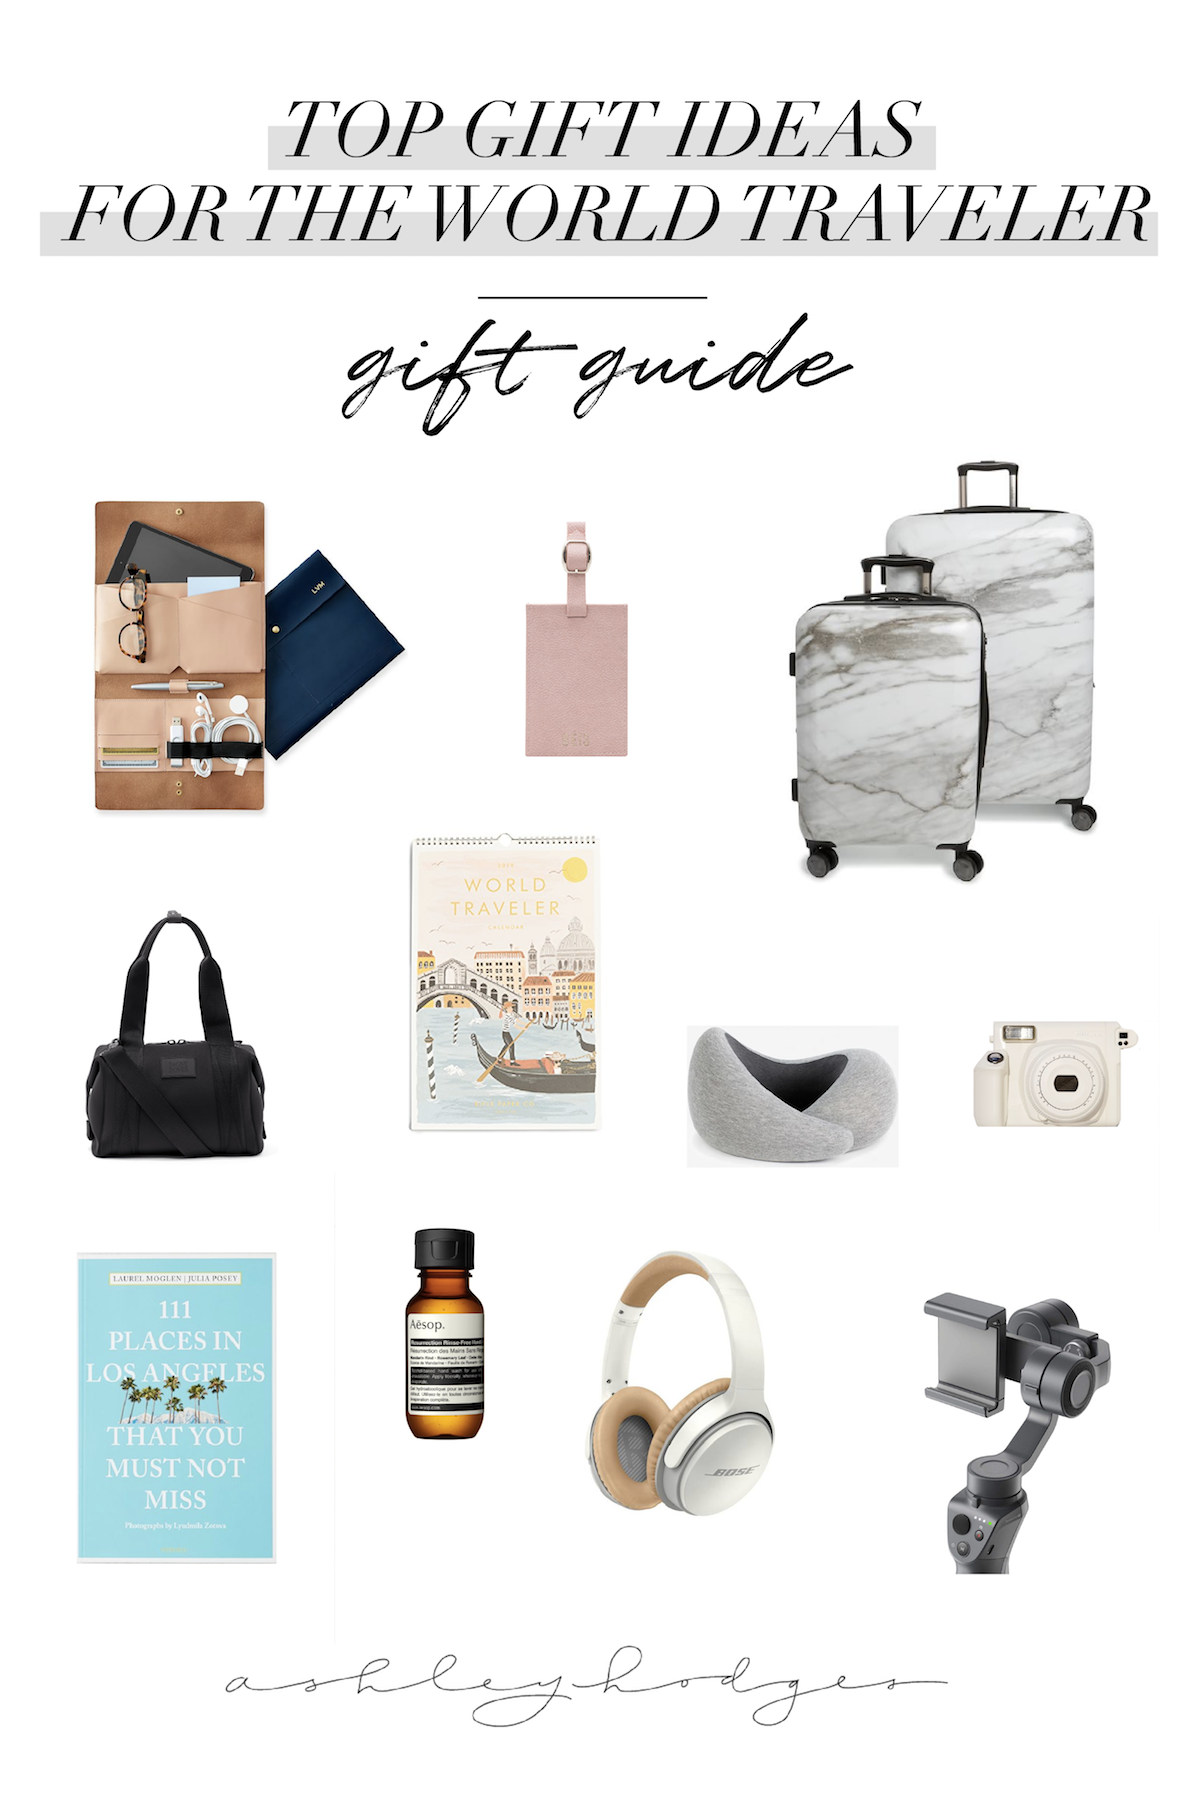 Top Gift Guide  For The World Traveler   Ashley Hodges   World Traveler    What to Pack in your Bag   Gift Guide   Holiday gift ideas   Travel af62acb74e